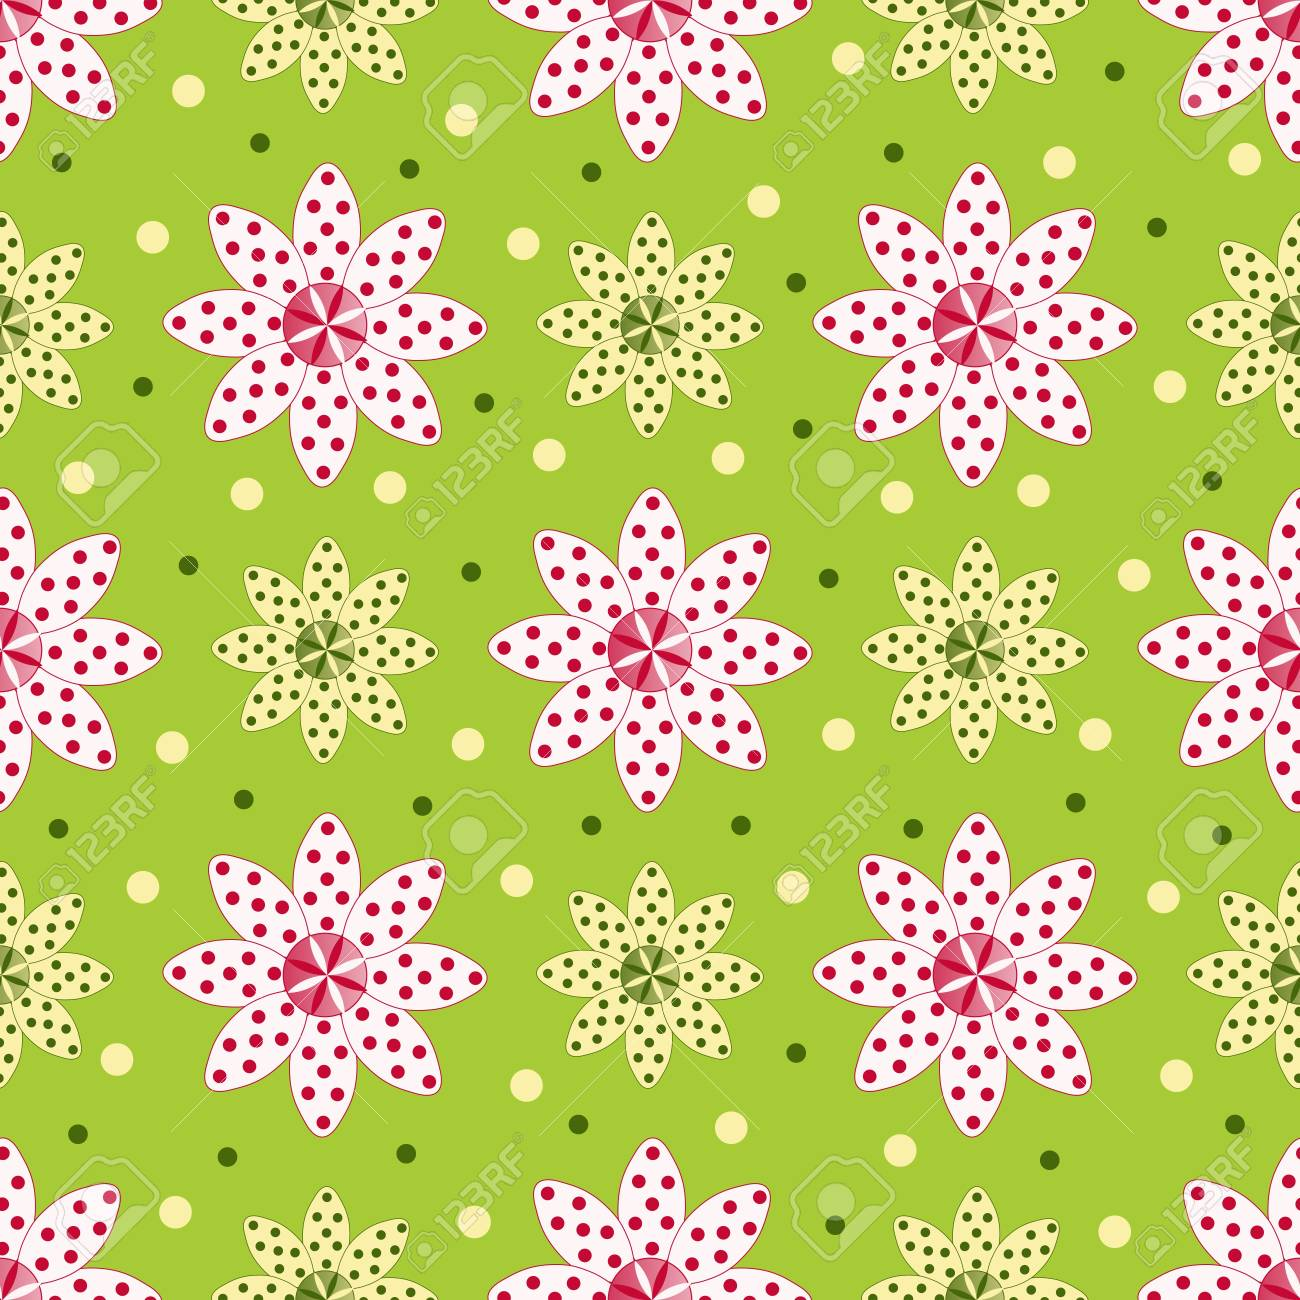 Abstract vector illustration of floral Stock Vector - 20284401